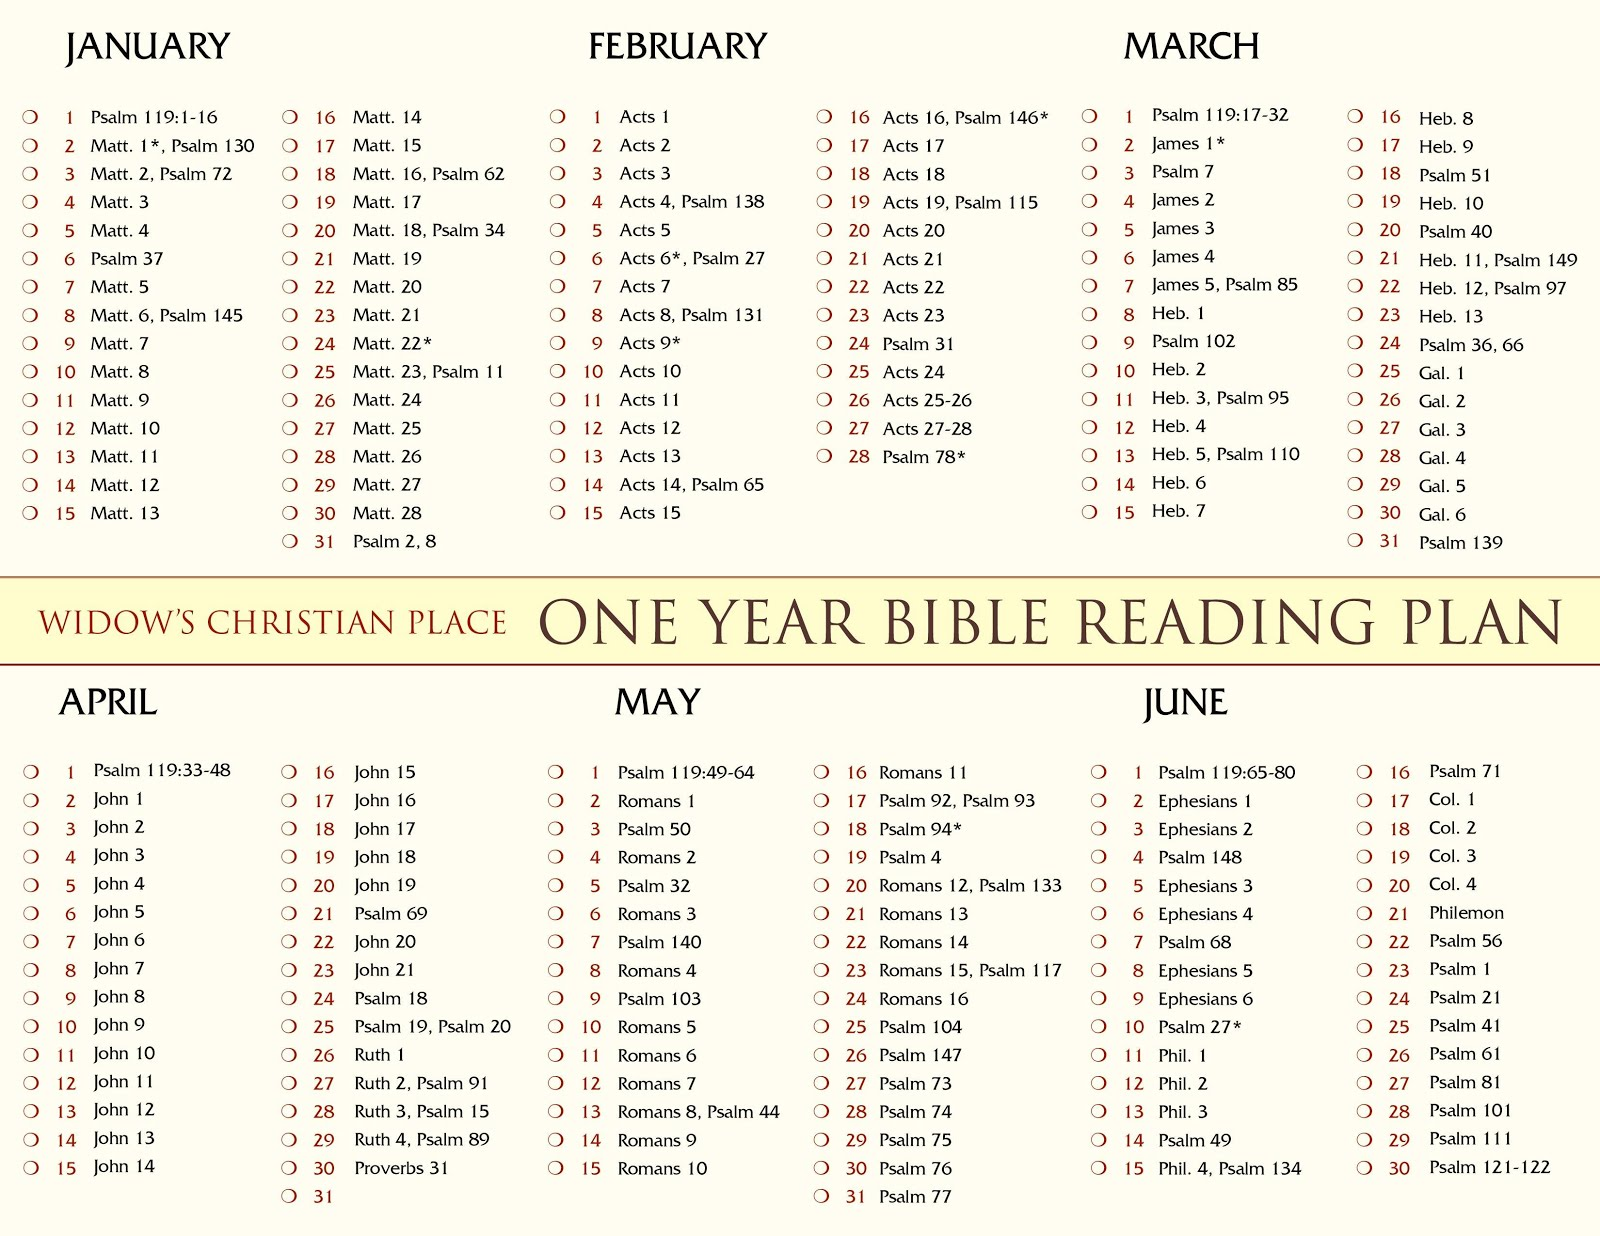 Click Image to Print Bible Reading Plan